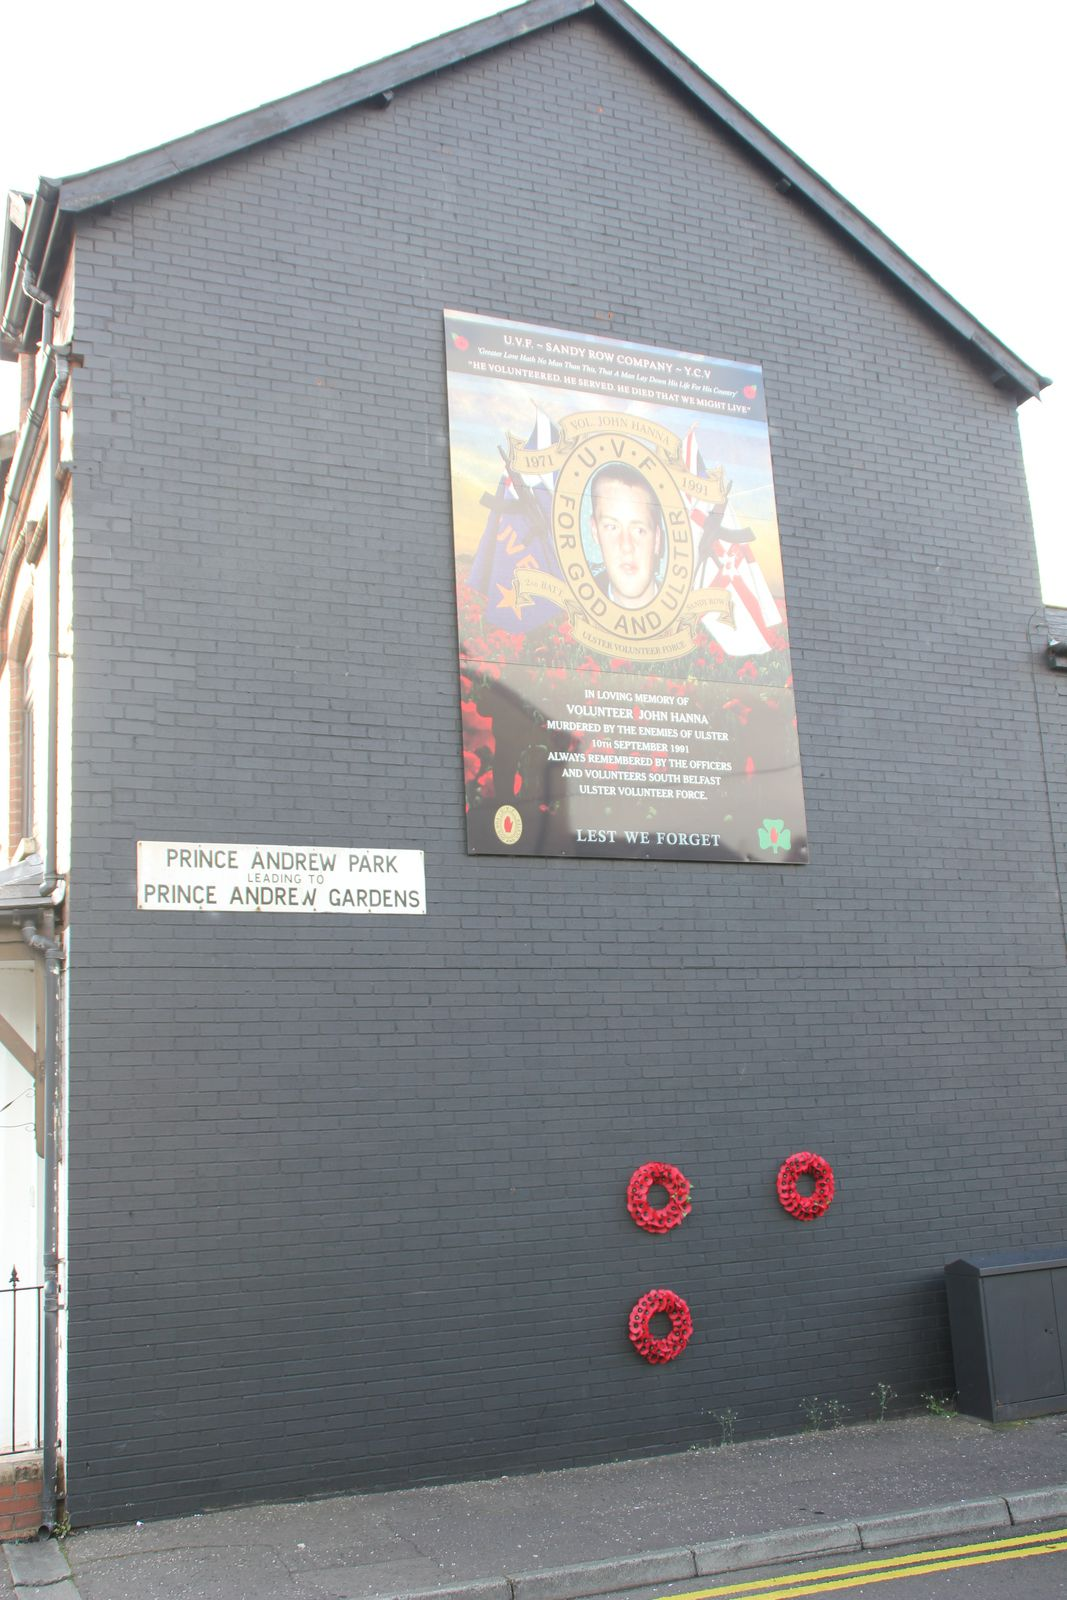 784) Donegall Road, South Belfast